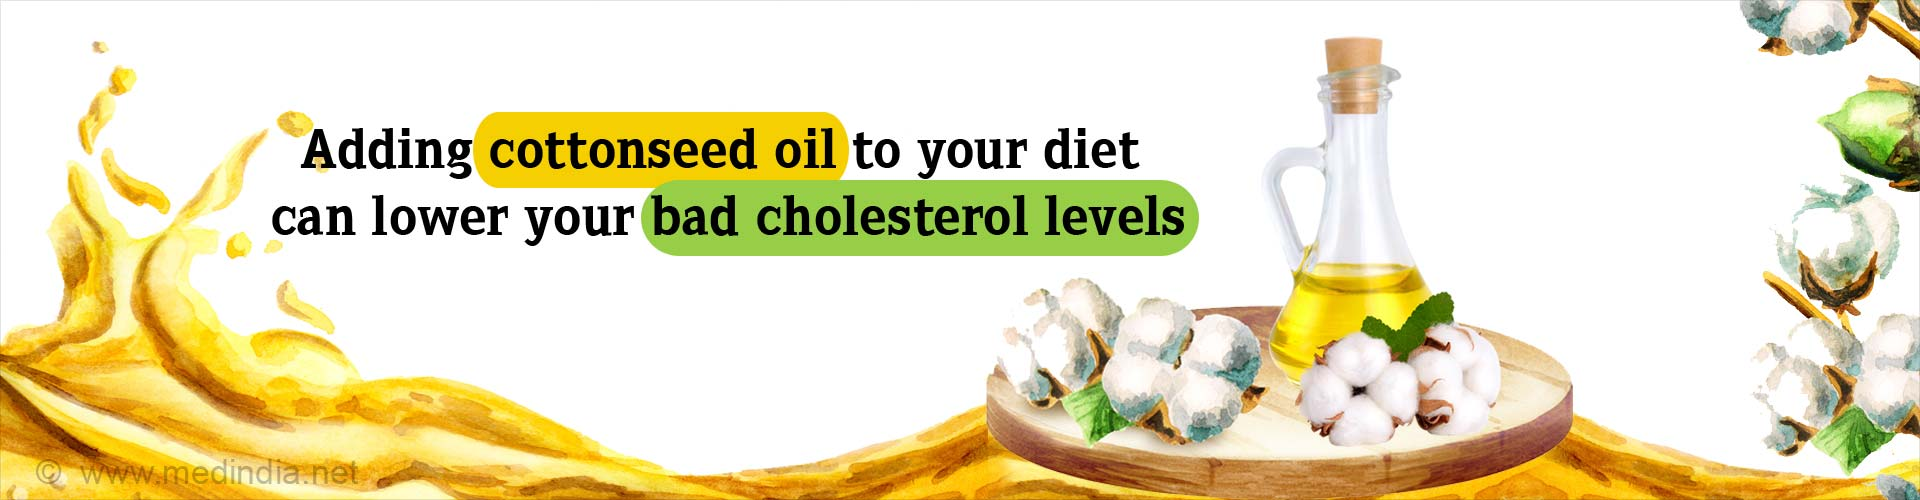 Adding cottonseed oil to your diet can lower your bad cholesterol levels.